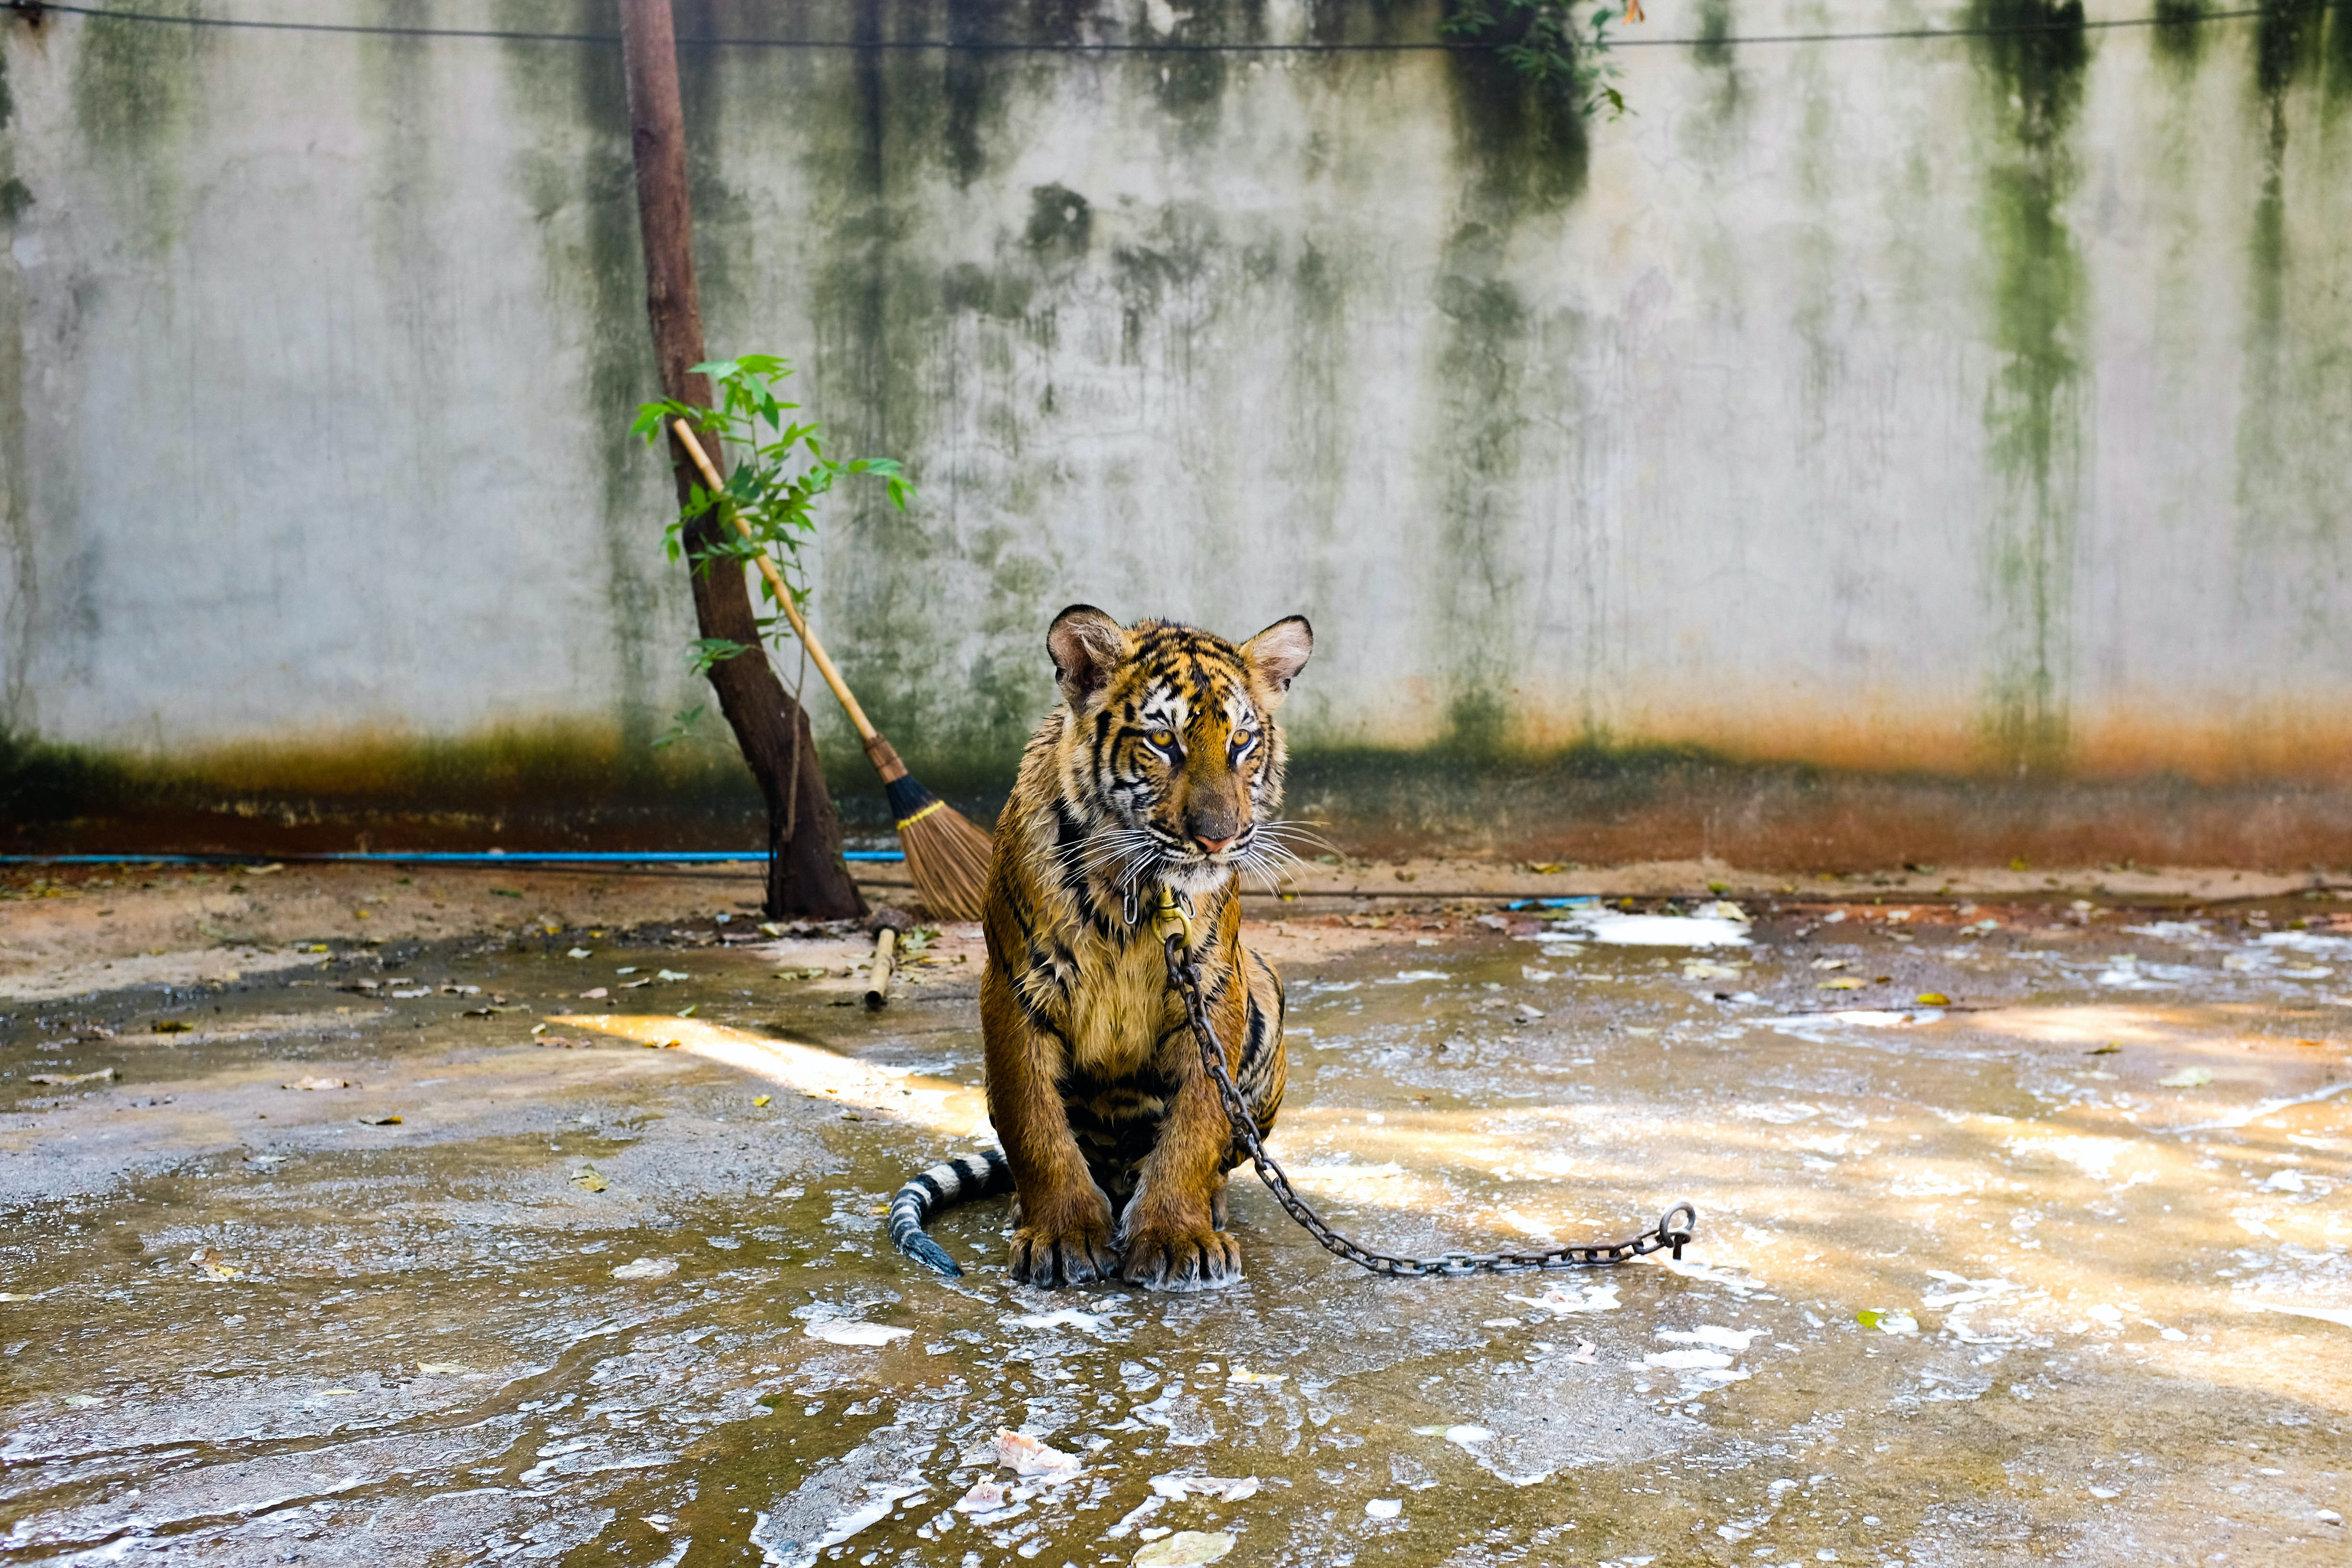 Sad tiger in captivity in puddle on chain in zoo with brush, tree, white wall background